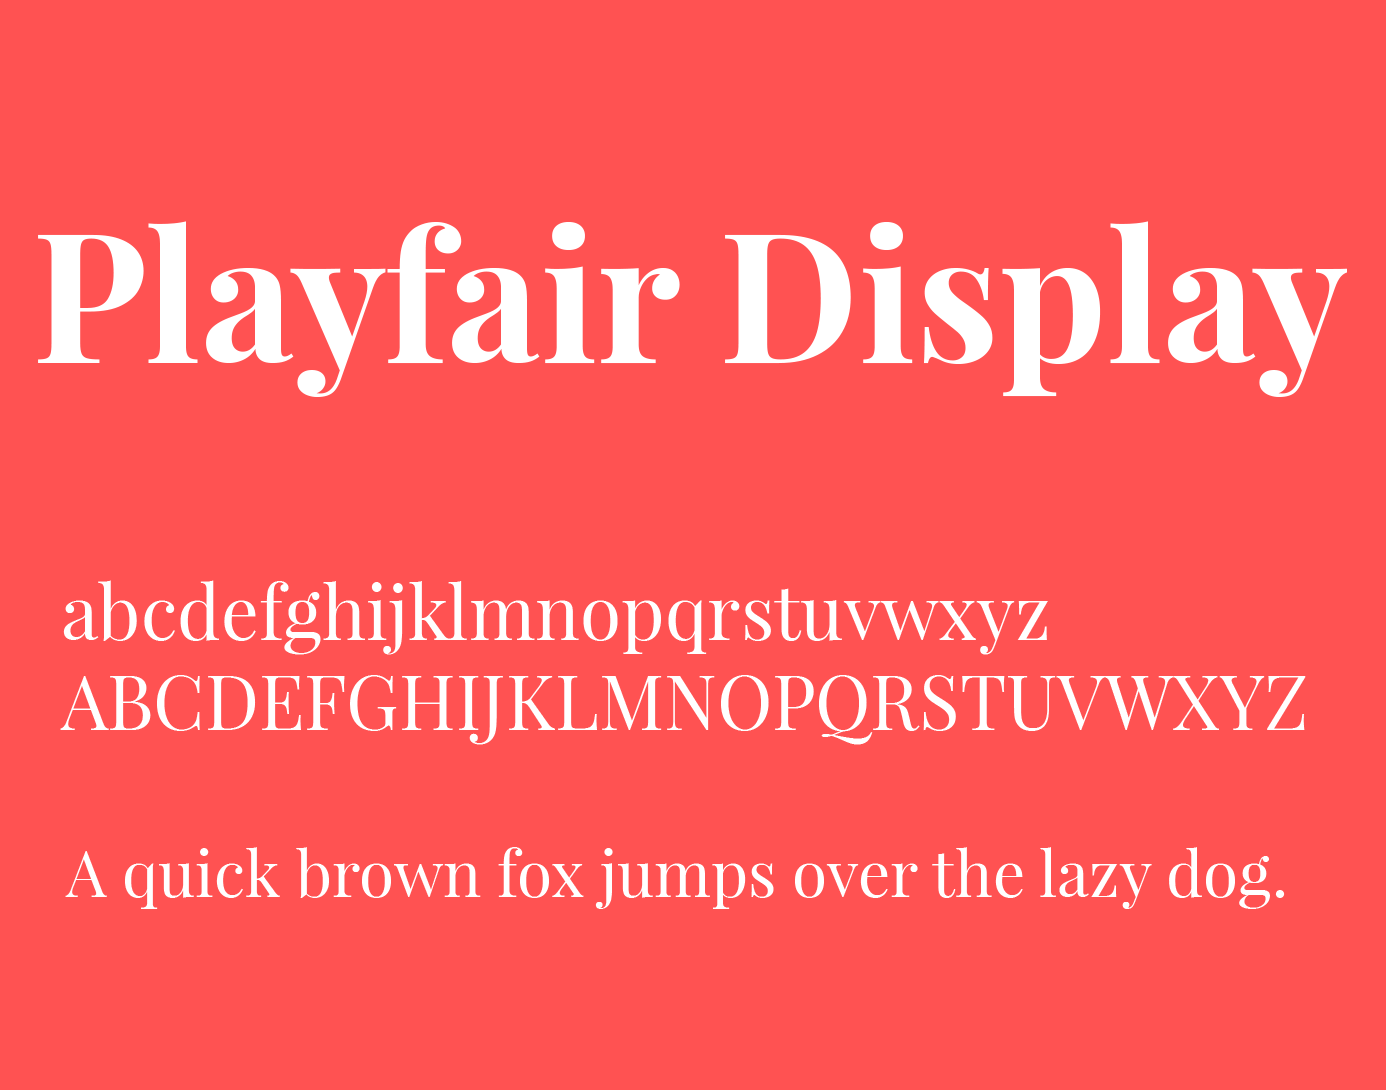 https://fontclarity.com/wp-content/uploads/2019/09/playfair-display-download-0.png Free Download